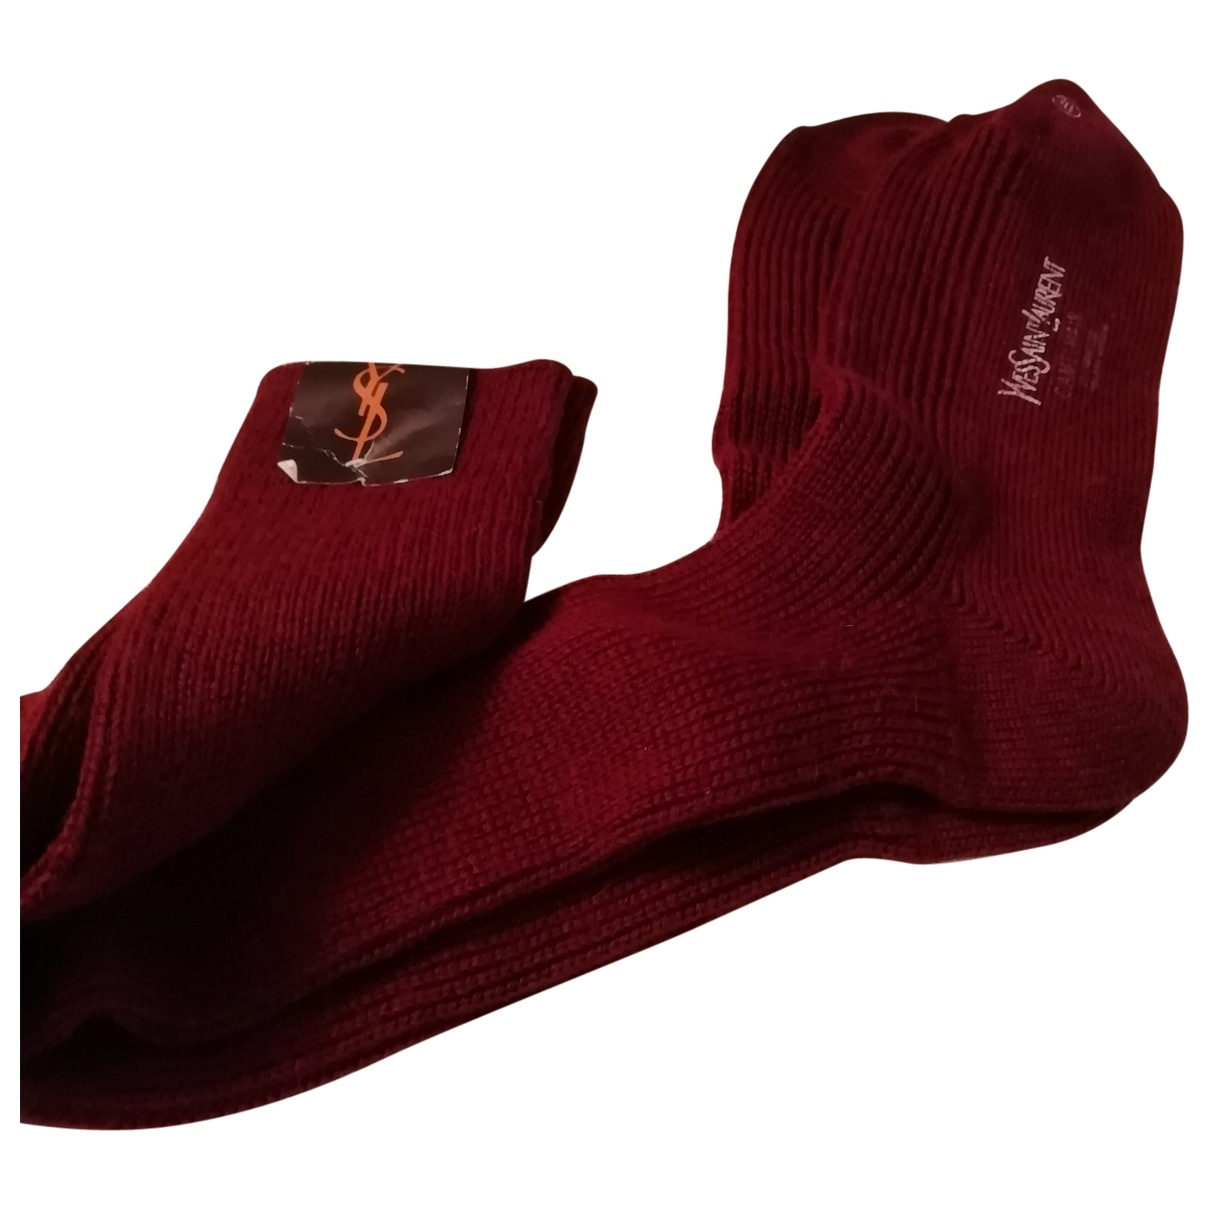 Yves Saint Laurent \N Burgundy Wool Gloves for Men XL International